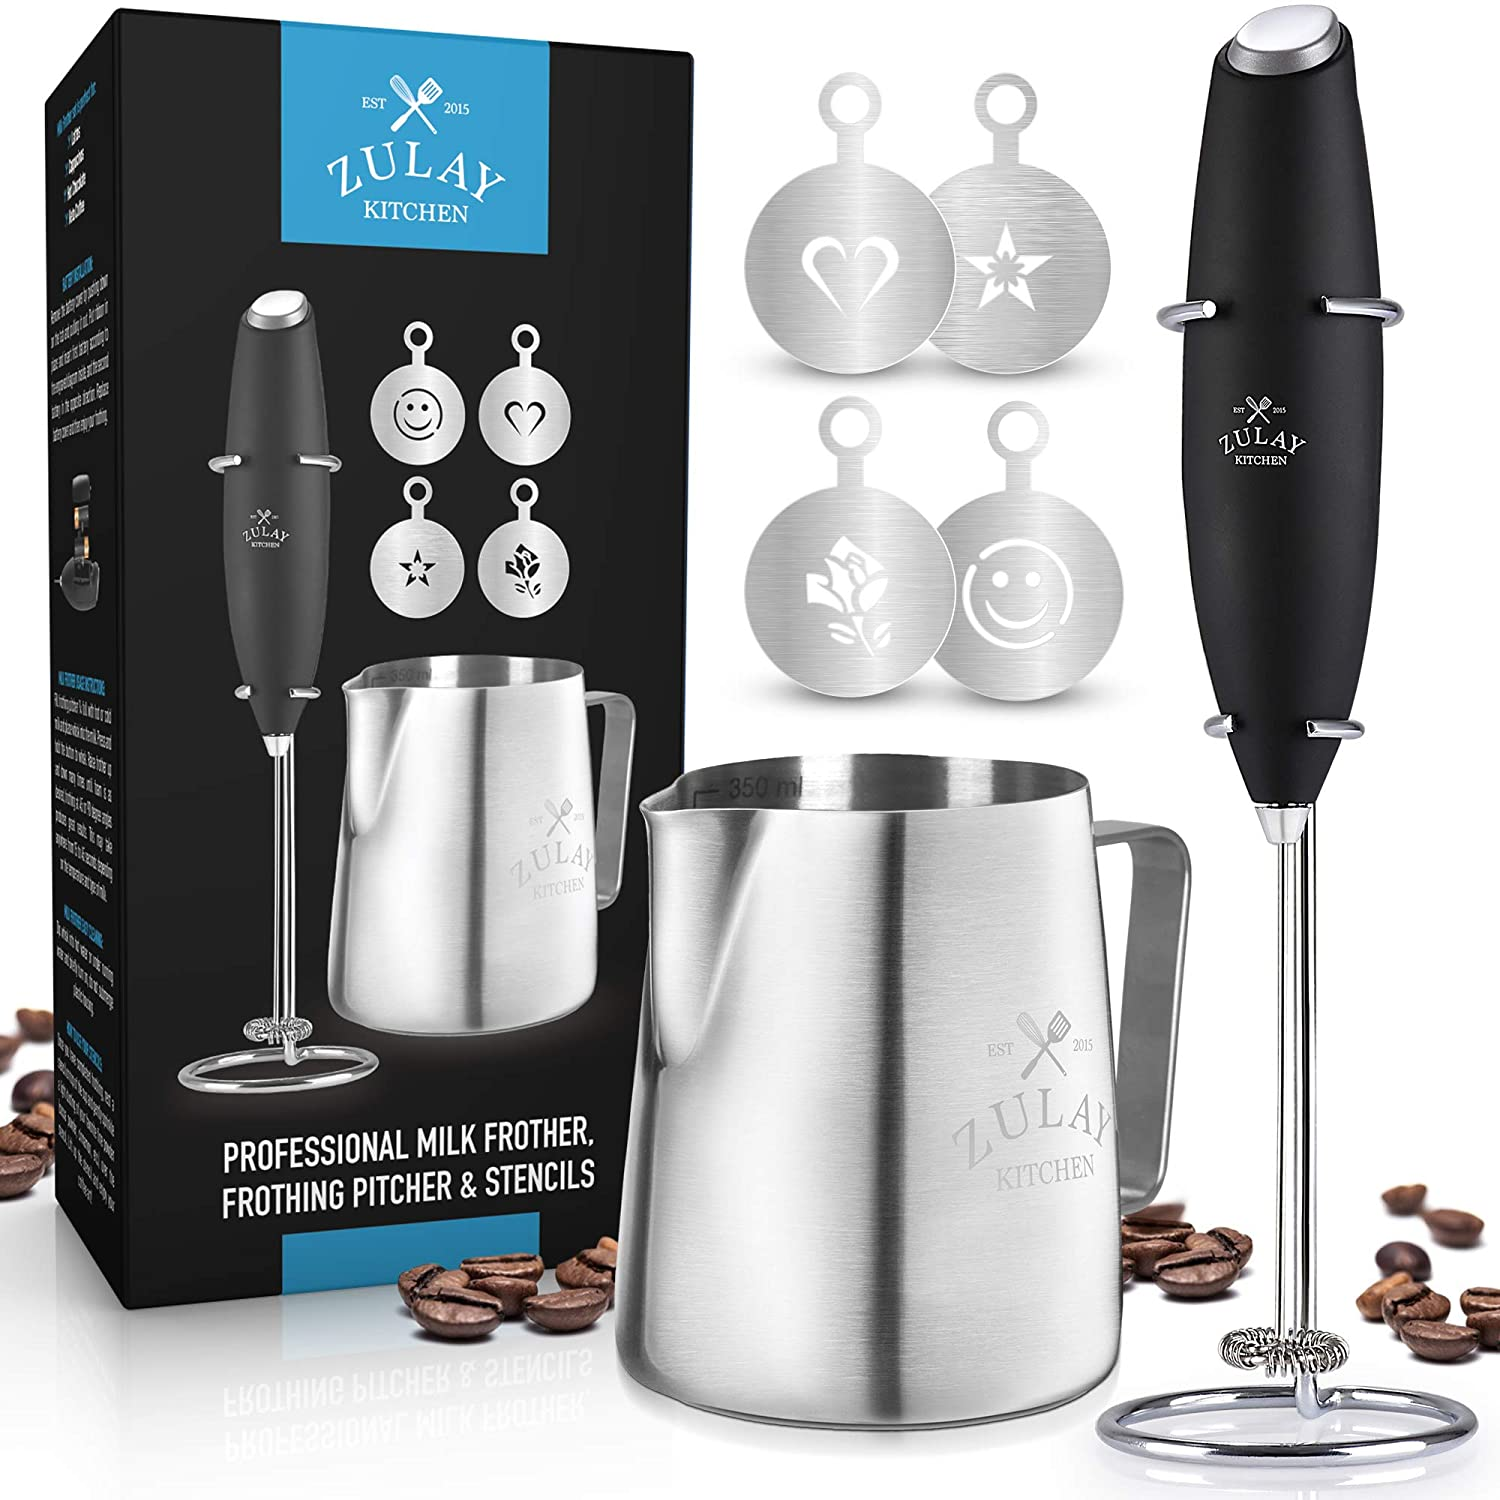 Zulay High Powered Milk Frother COMPLETE SET - Handheld Foam Maker for Lattes - Great Whisk Drink Mixer for Bulletproof® Coffee, Mini Blender and Foamer Perfect for Cappuccino, Frappe, Matcha, Hot Chocolate by Milk Boss - Includes Frother, Coffee Decorating Stencils and Frothing Cup.